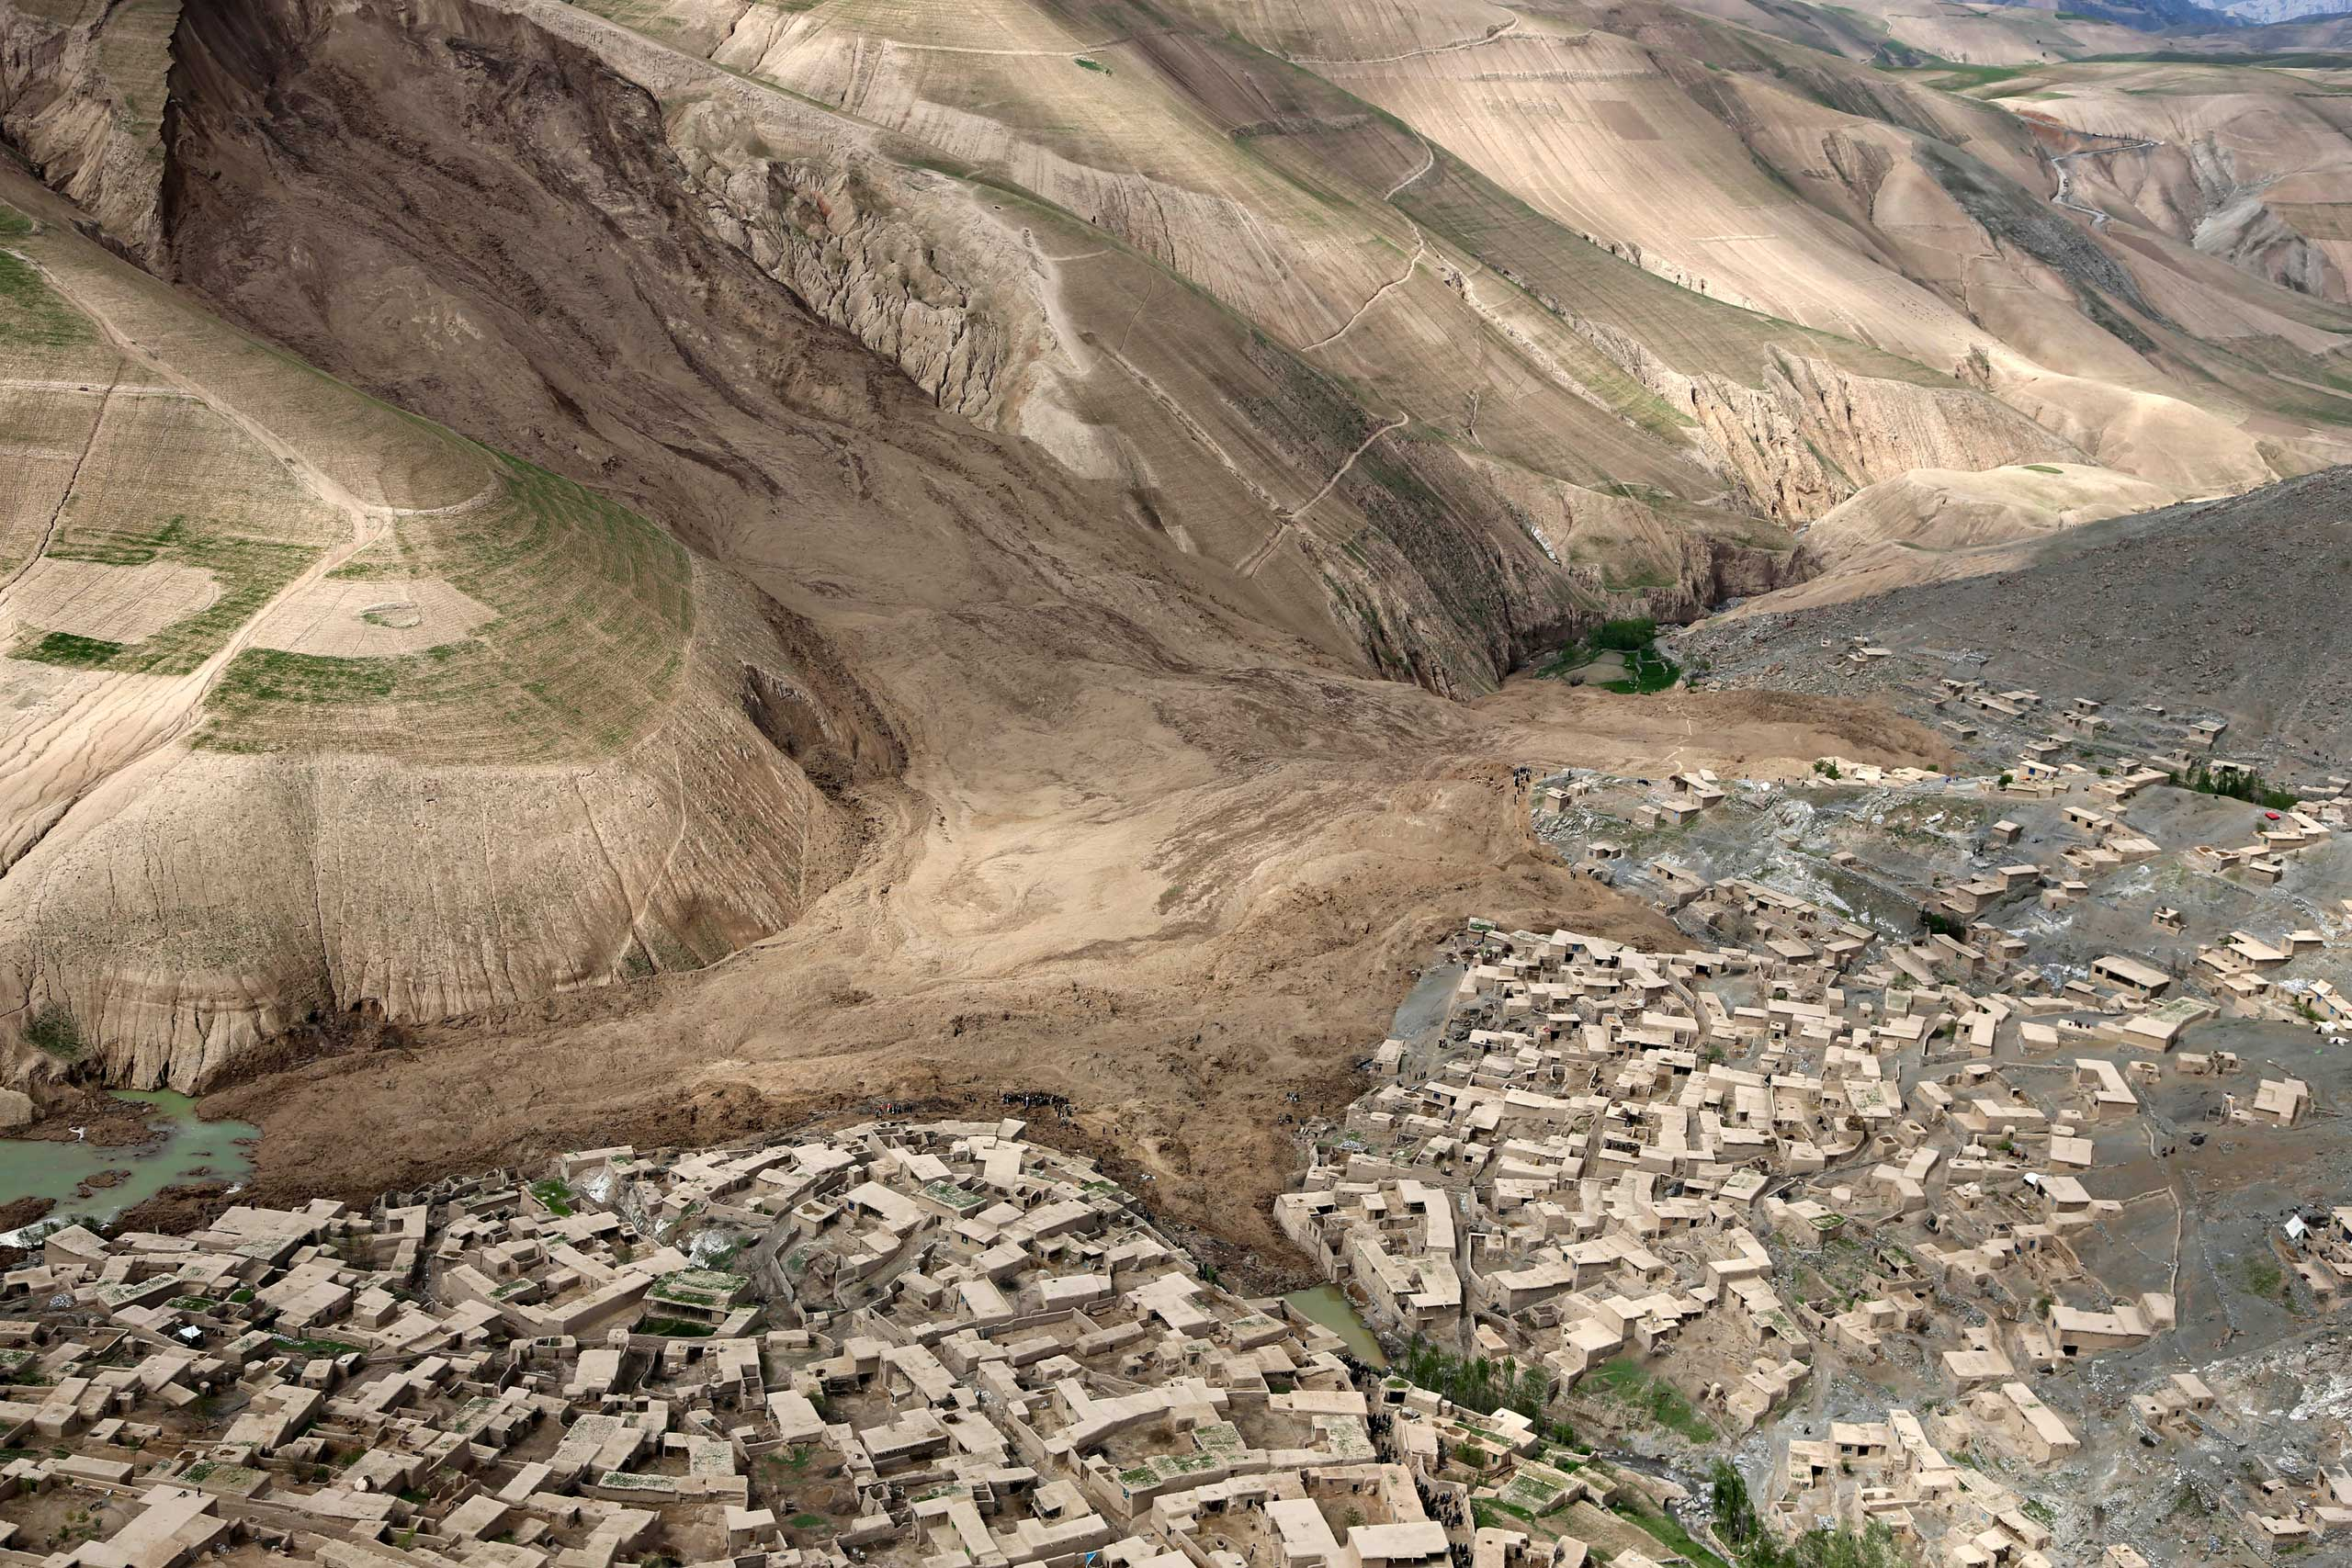 <b>Afghanistan Mudslide</b> An aerial view shows the site of a landslide that buried Abi Barik village in Badakhshan province, northeastern Afghanistan, May 5, 2014. Hundreds of people were killed and 700 families displaced.